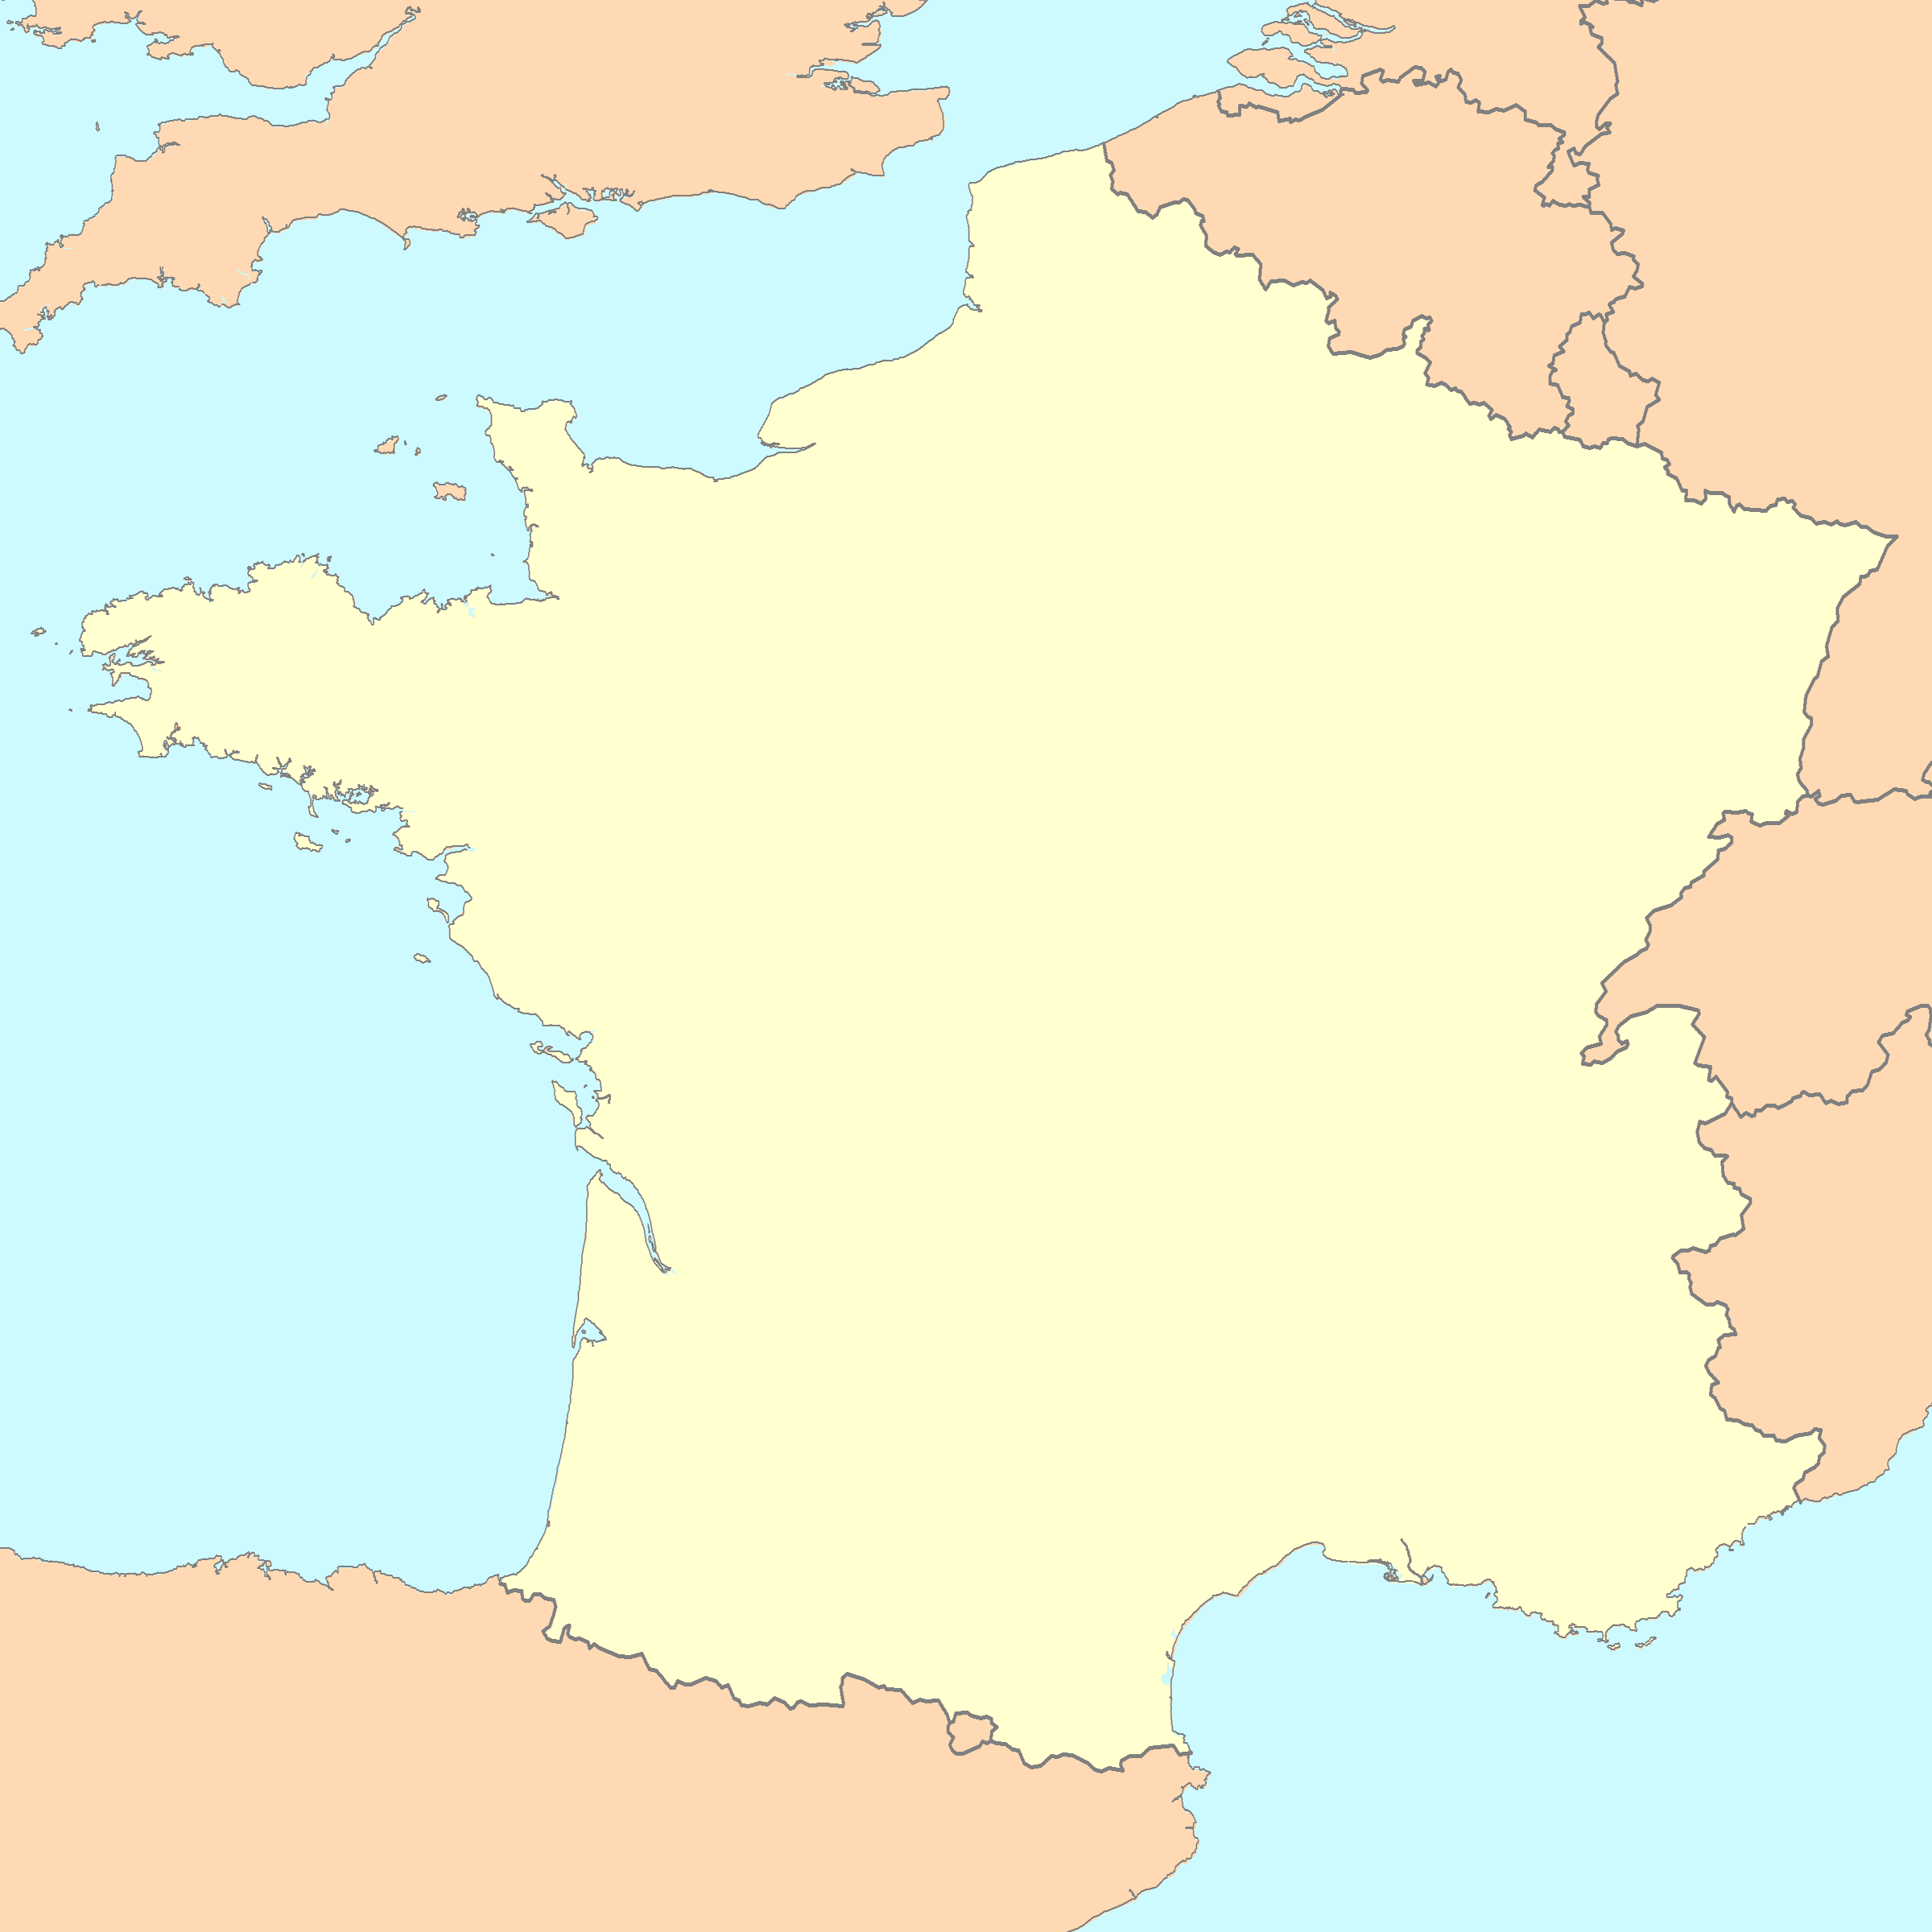 FileFrance Map Blankpng Wikimedia Commons - France map images blank